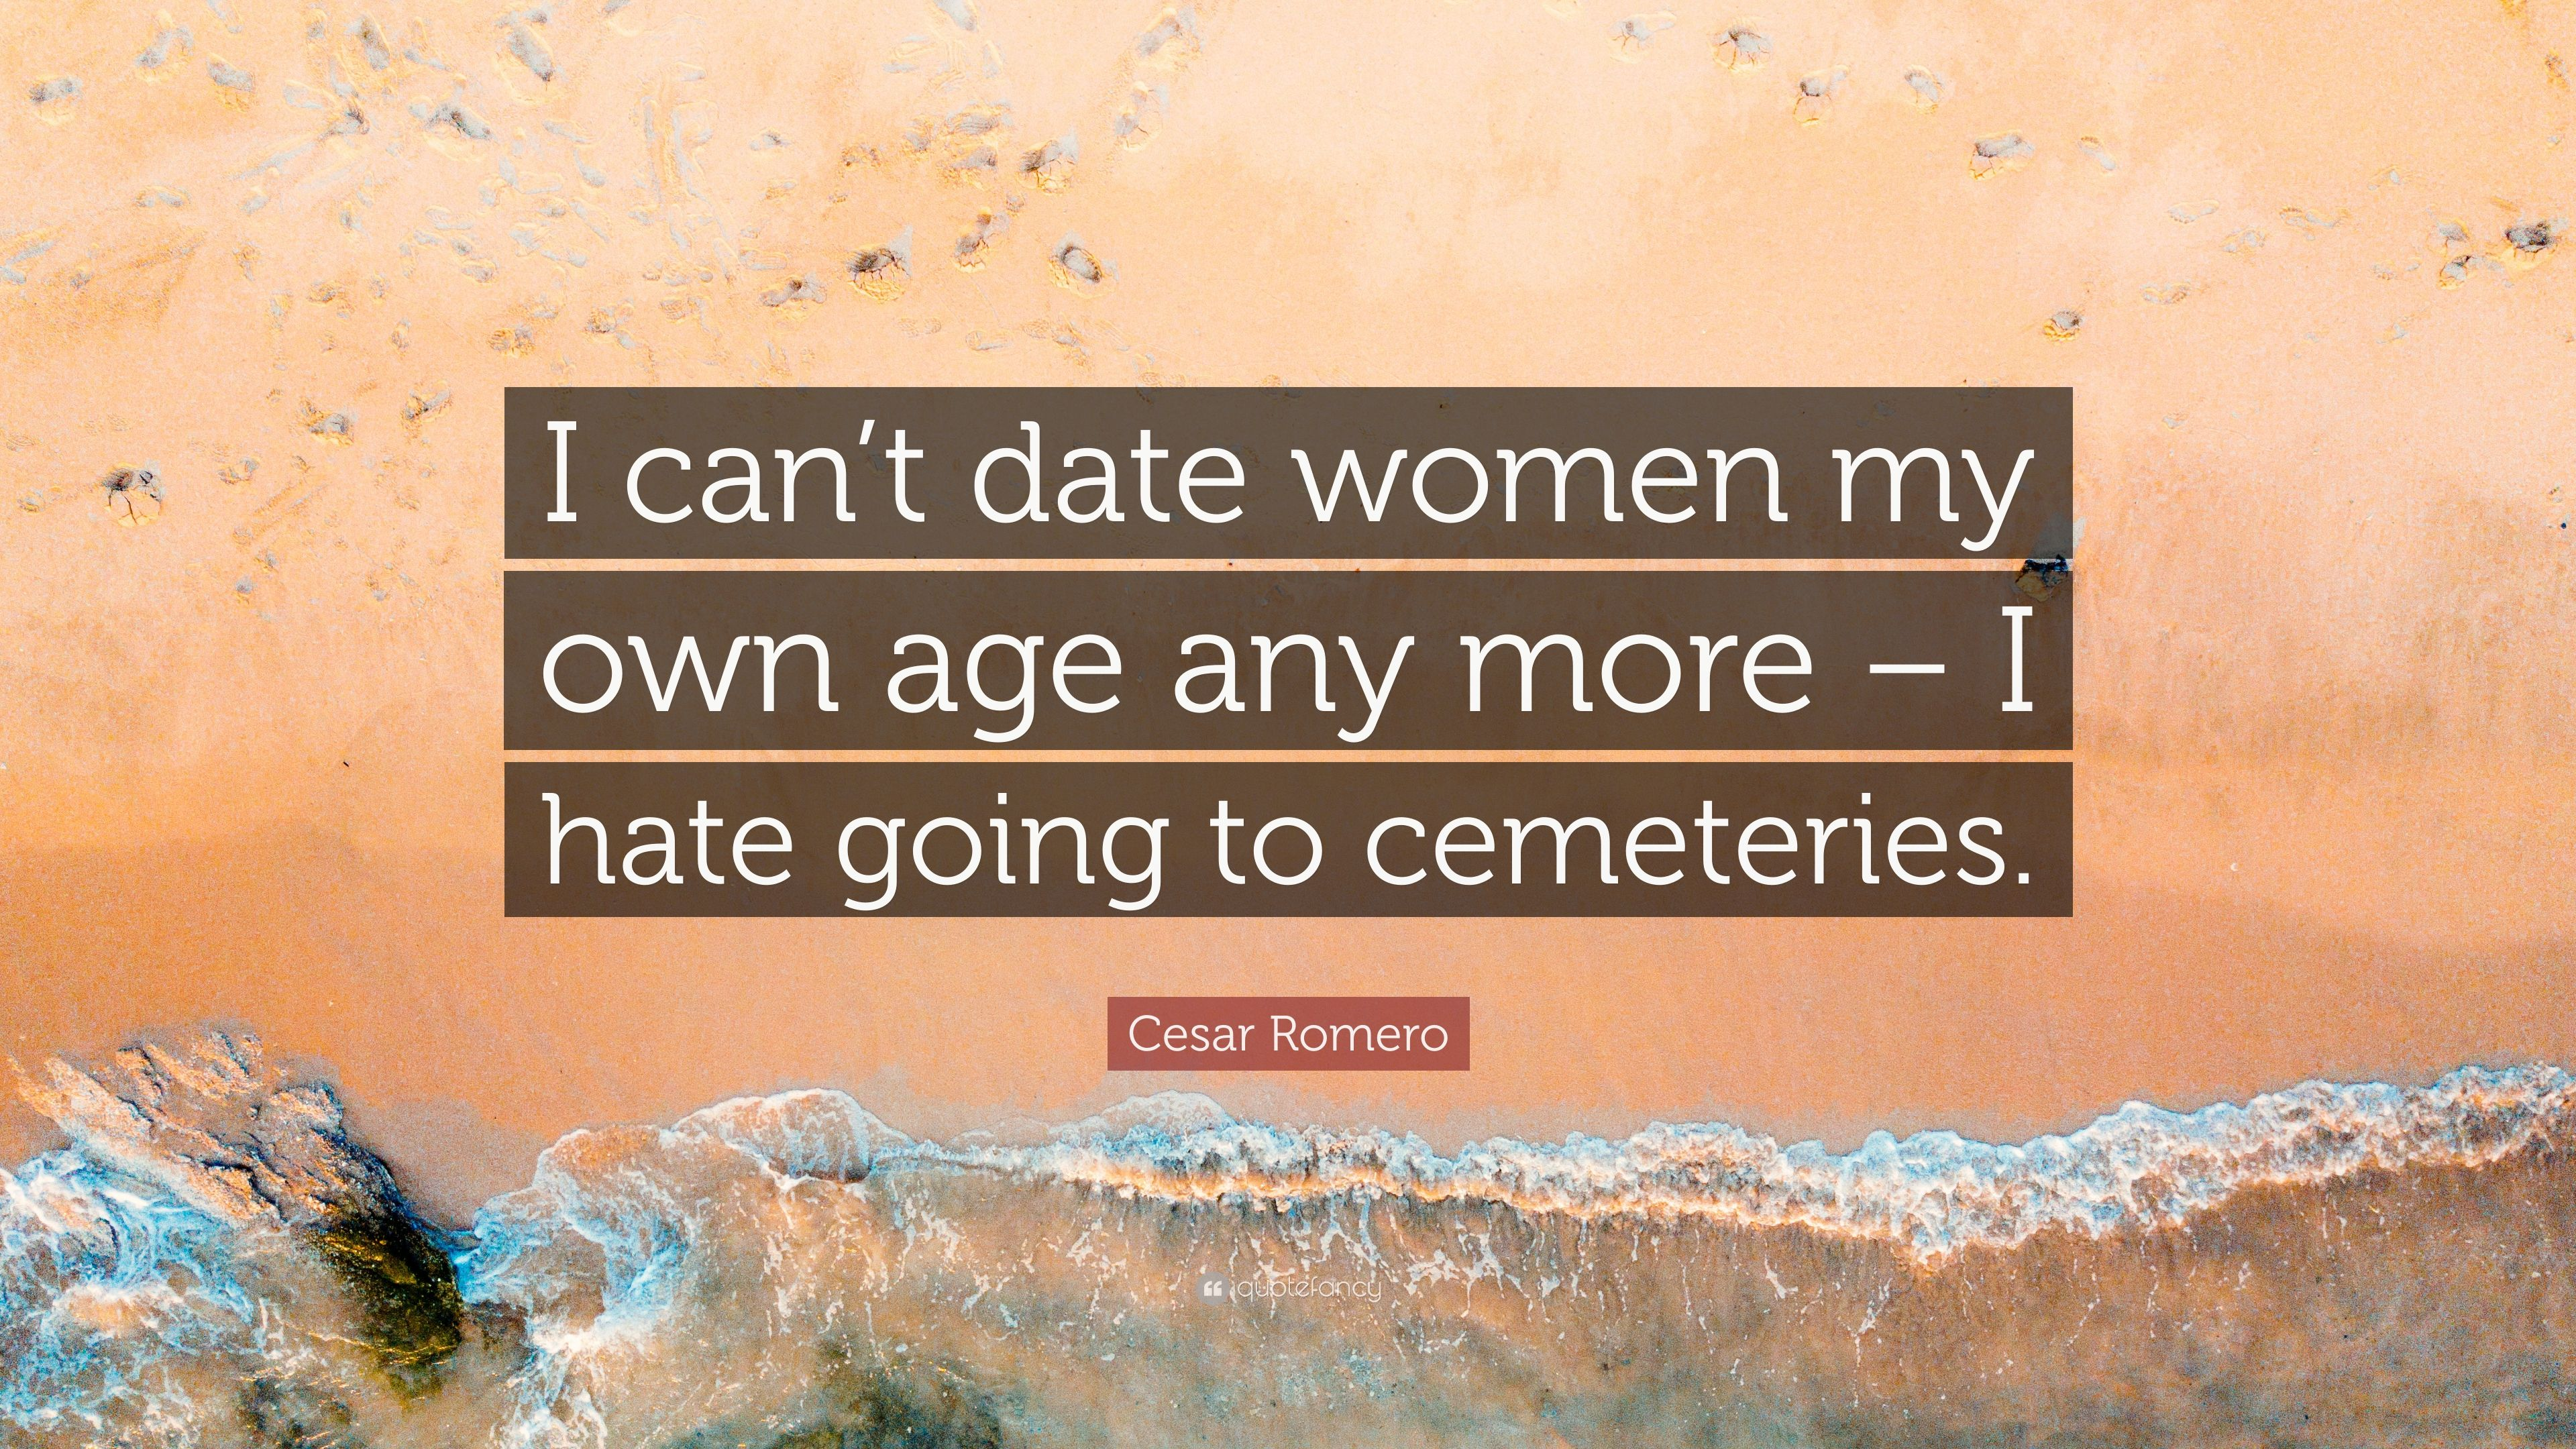 Dating a woman my own age